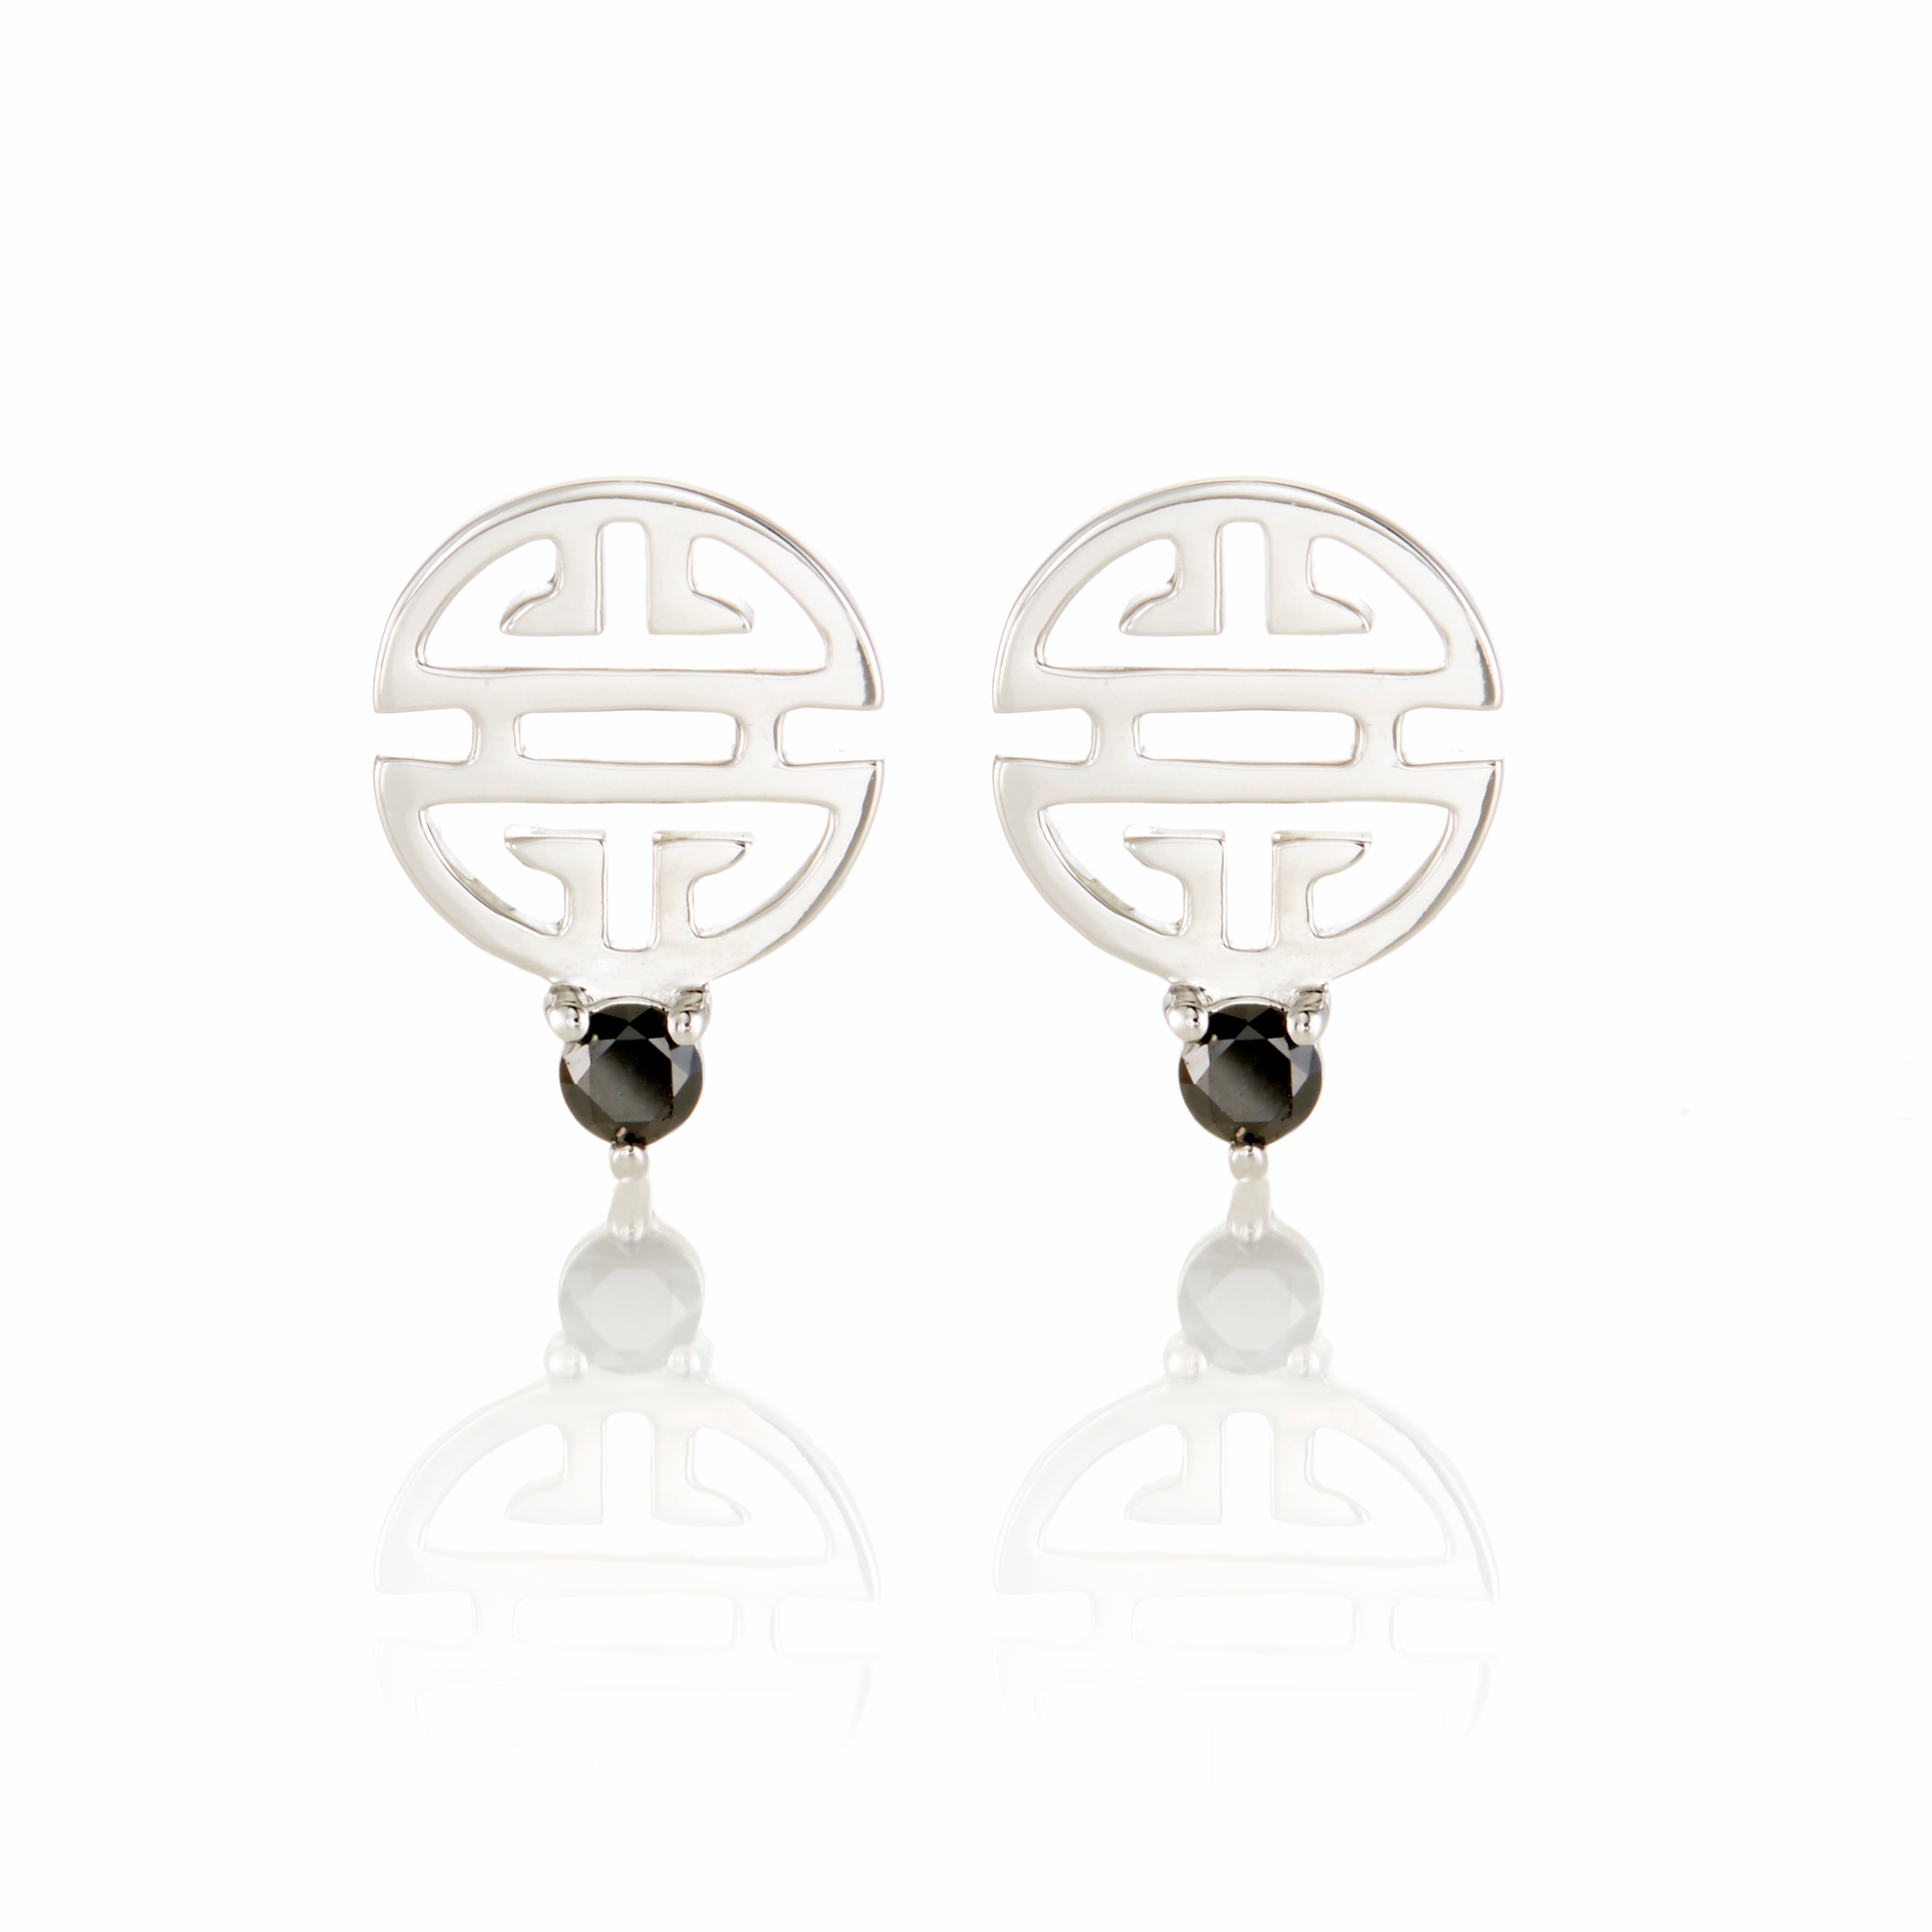 Gump's Silver Shou & Black Diamond Stud Earrings